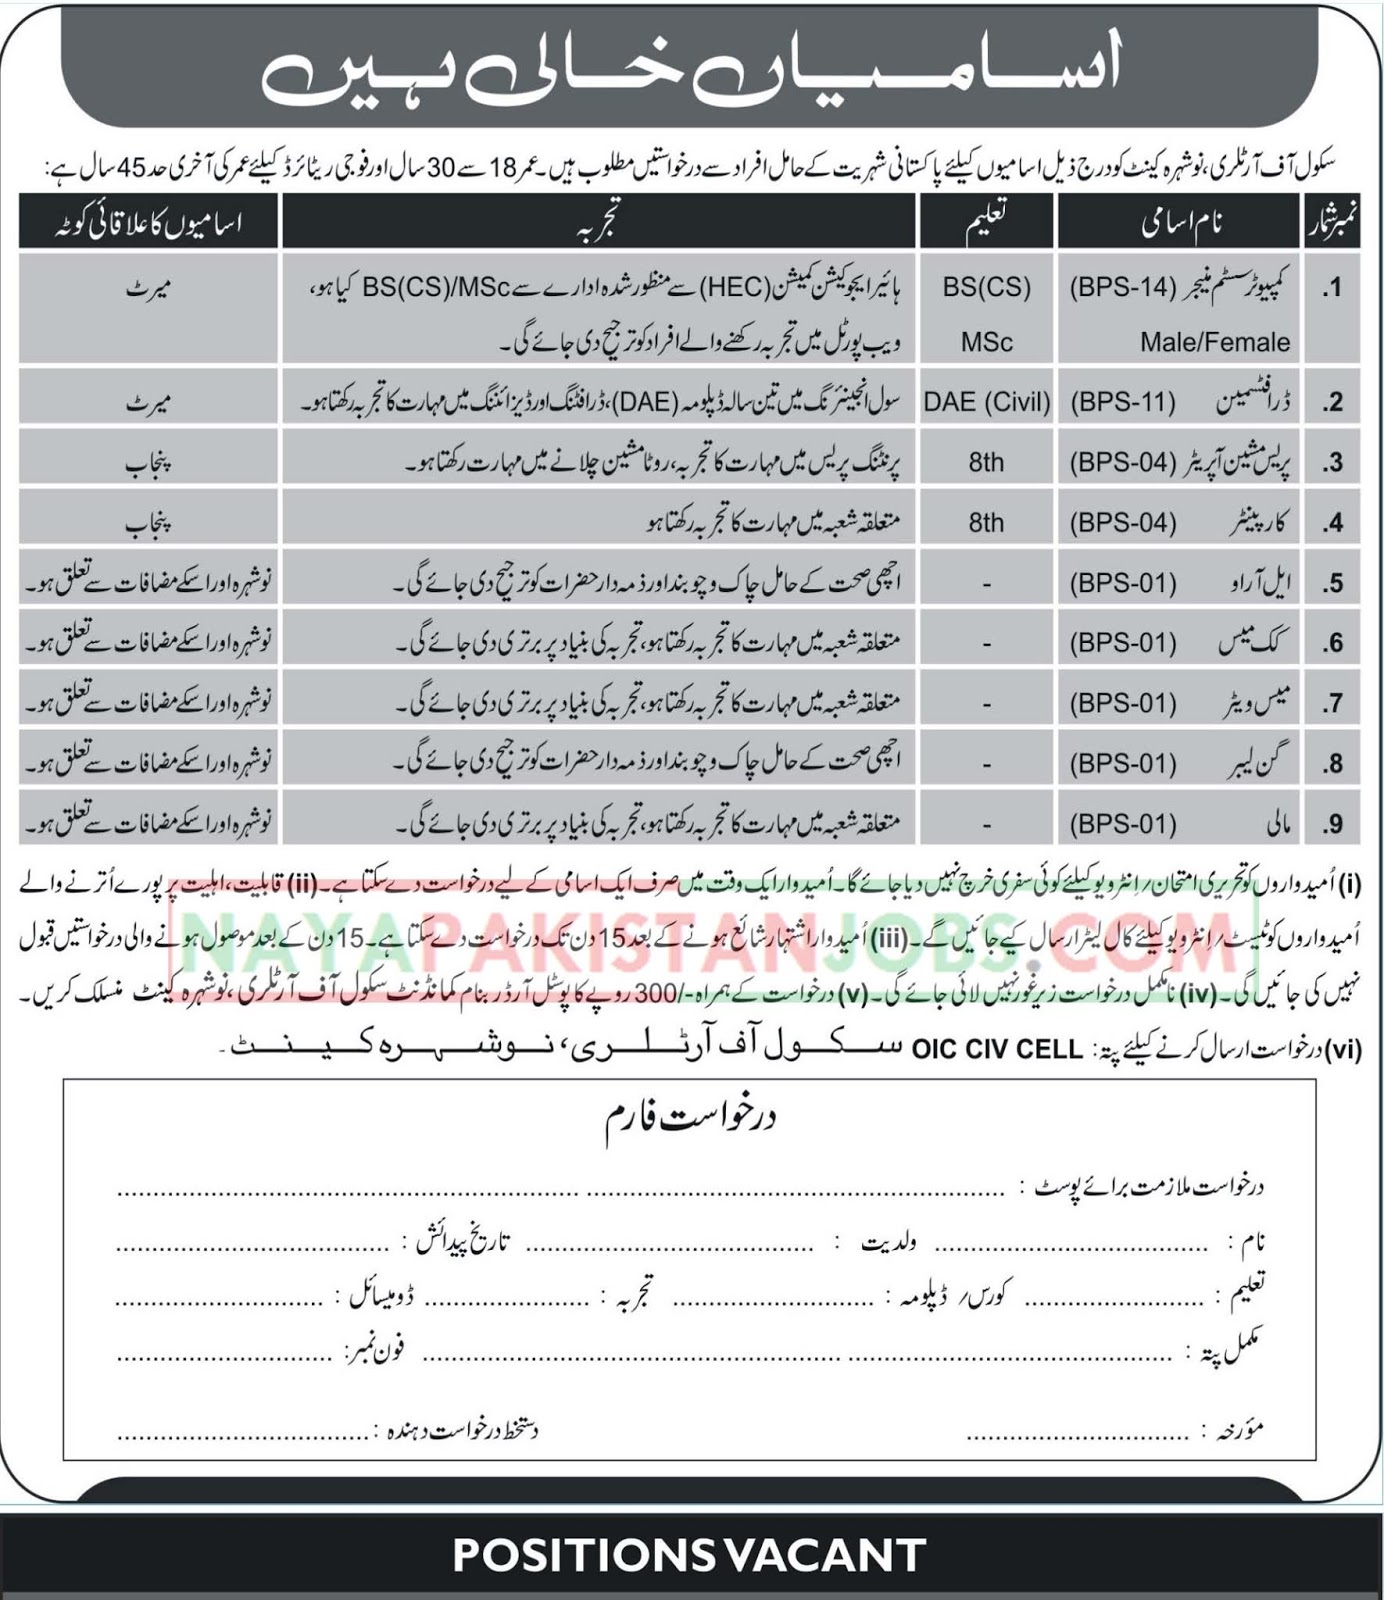 Latest Vacancies Announced in Pakistan Army at School Of Artillery Nowshera Cantt 14 November 2018 - Naya Pakistan